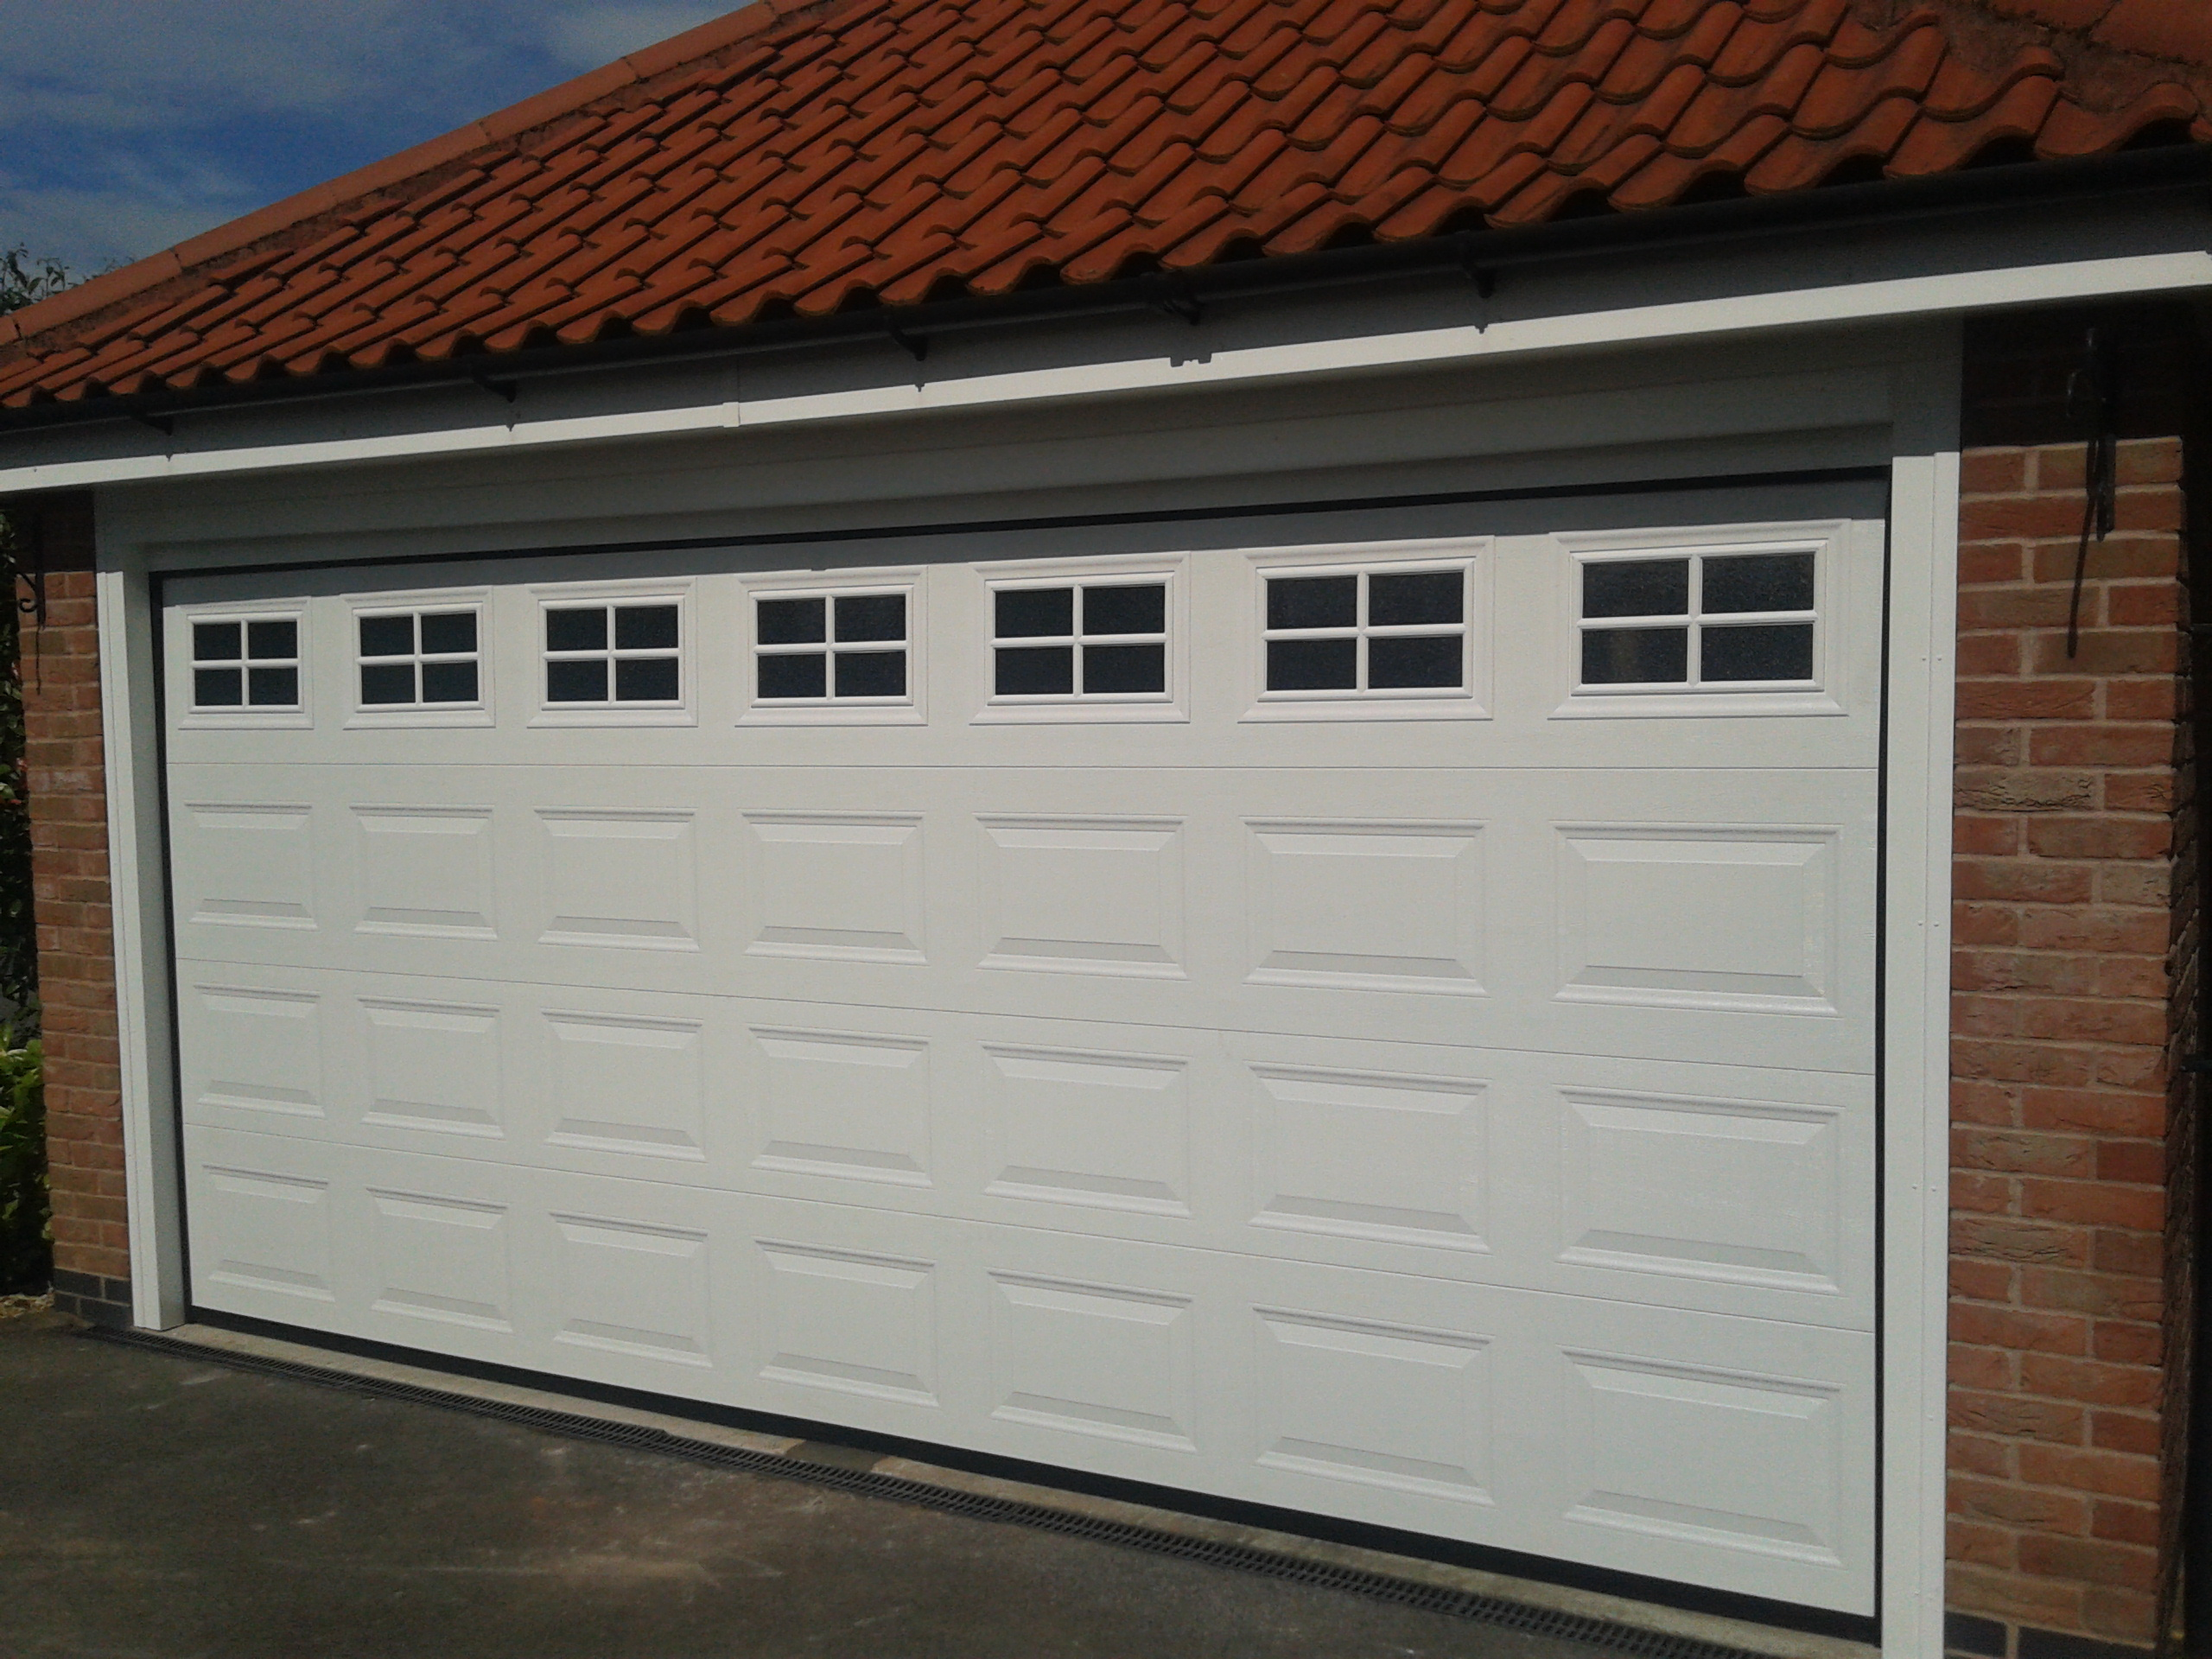 Garage door photos large and beautiful photos photo to select garage door photos rubansaba